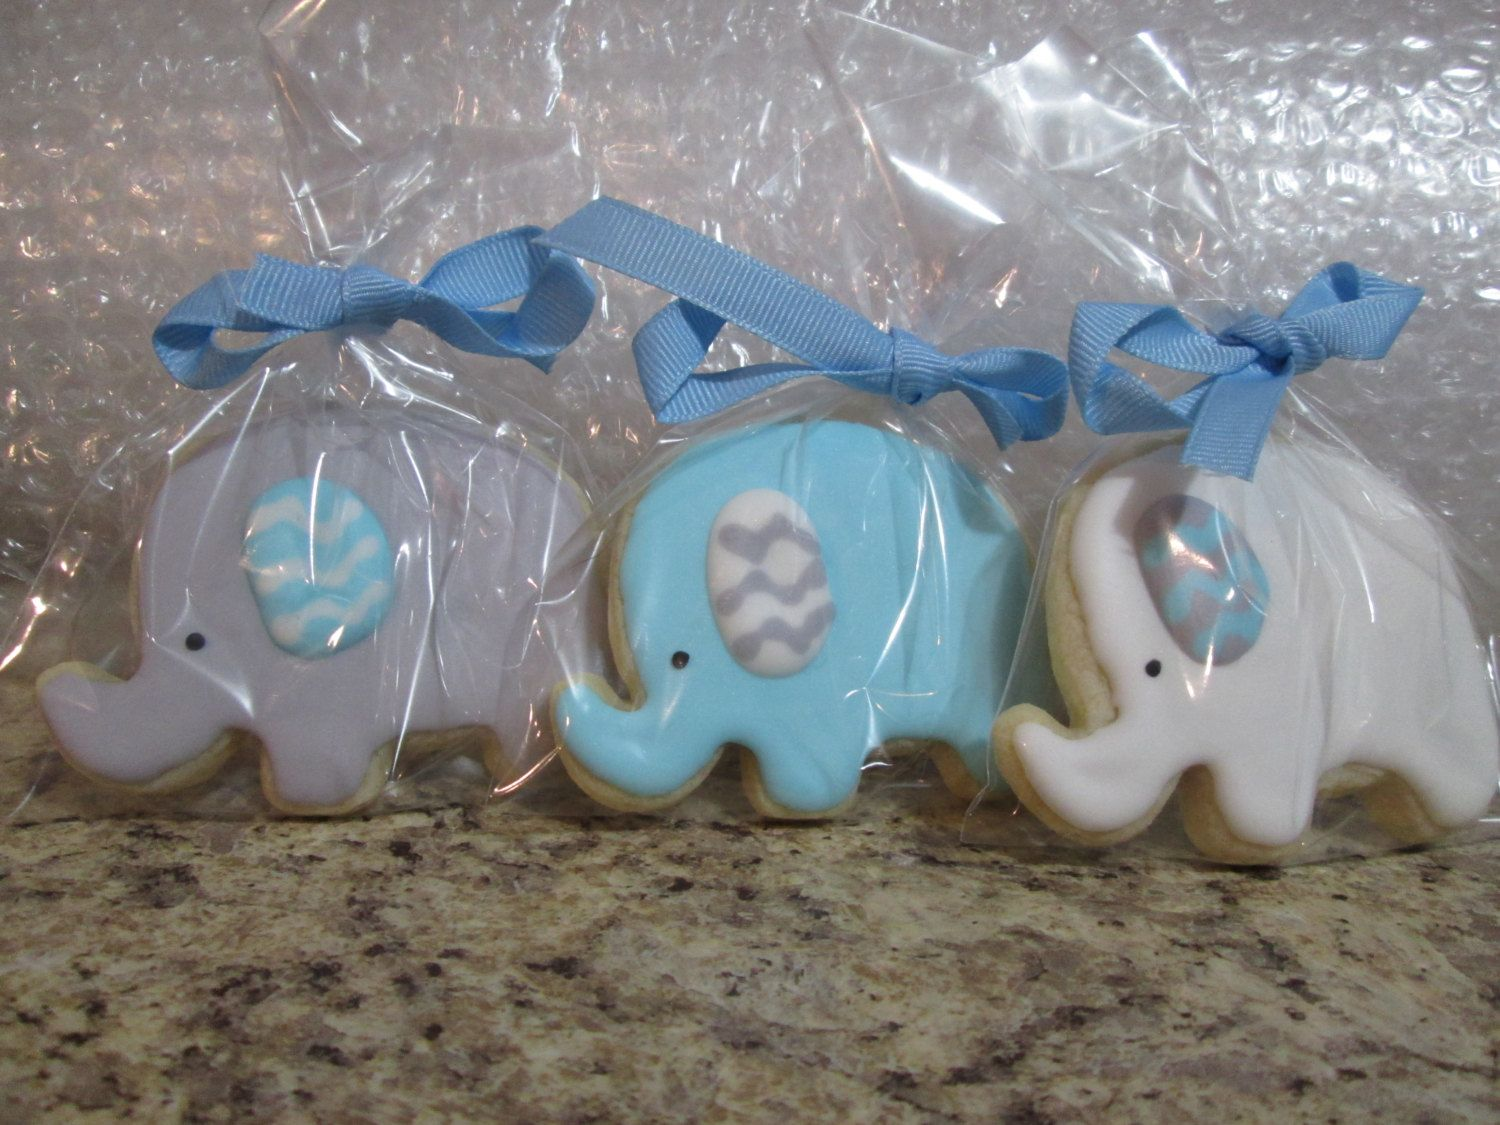 "elephant trendy baby shower ideas | Elephant Baby Shower decorated Sugar Cookies 2"" -1 dozen ..."